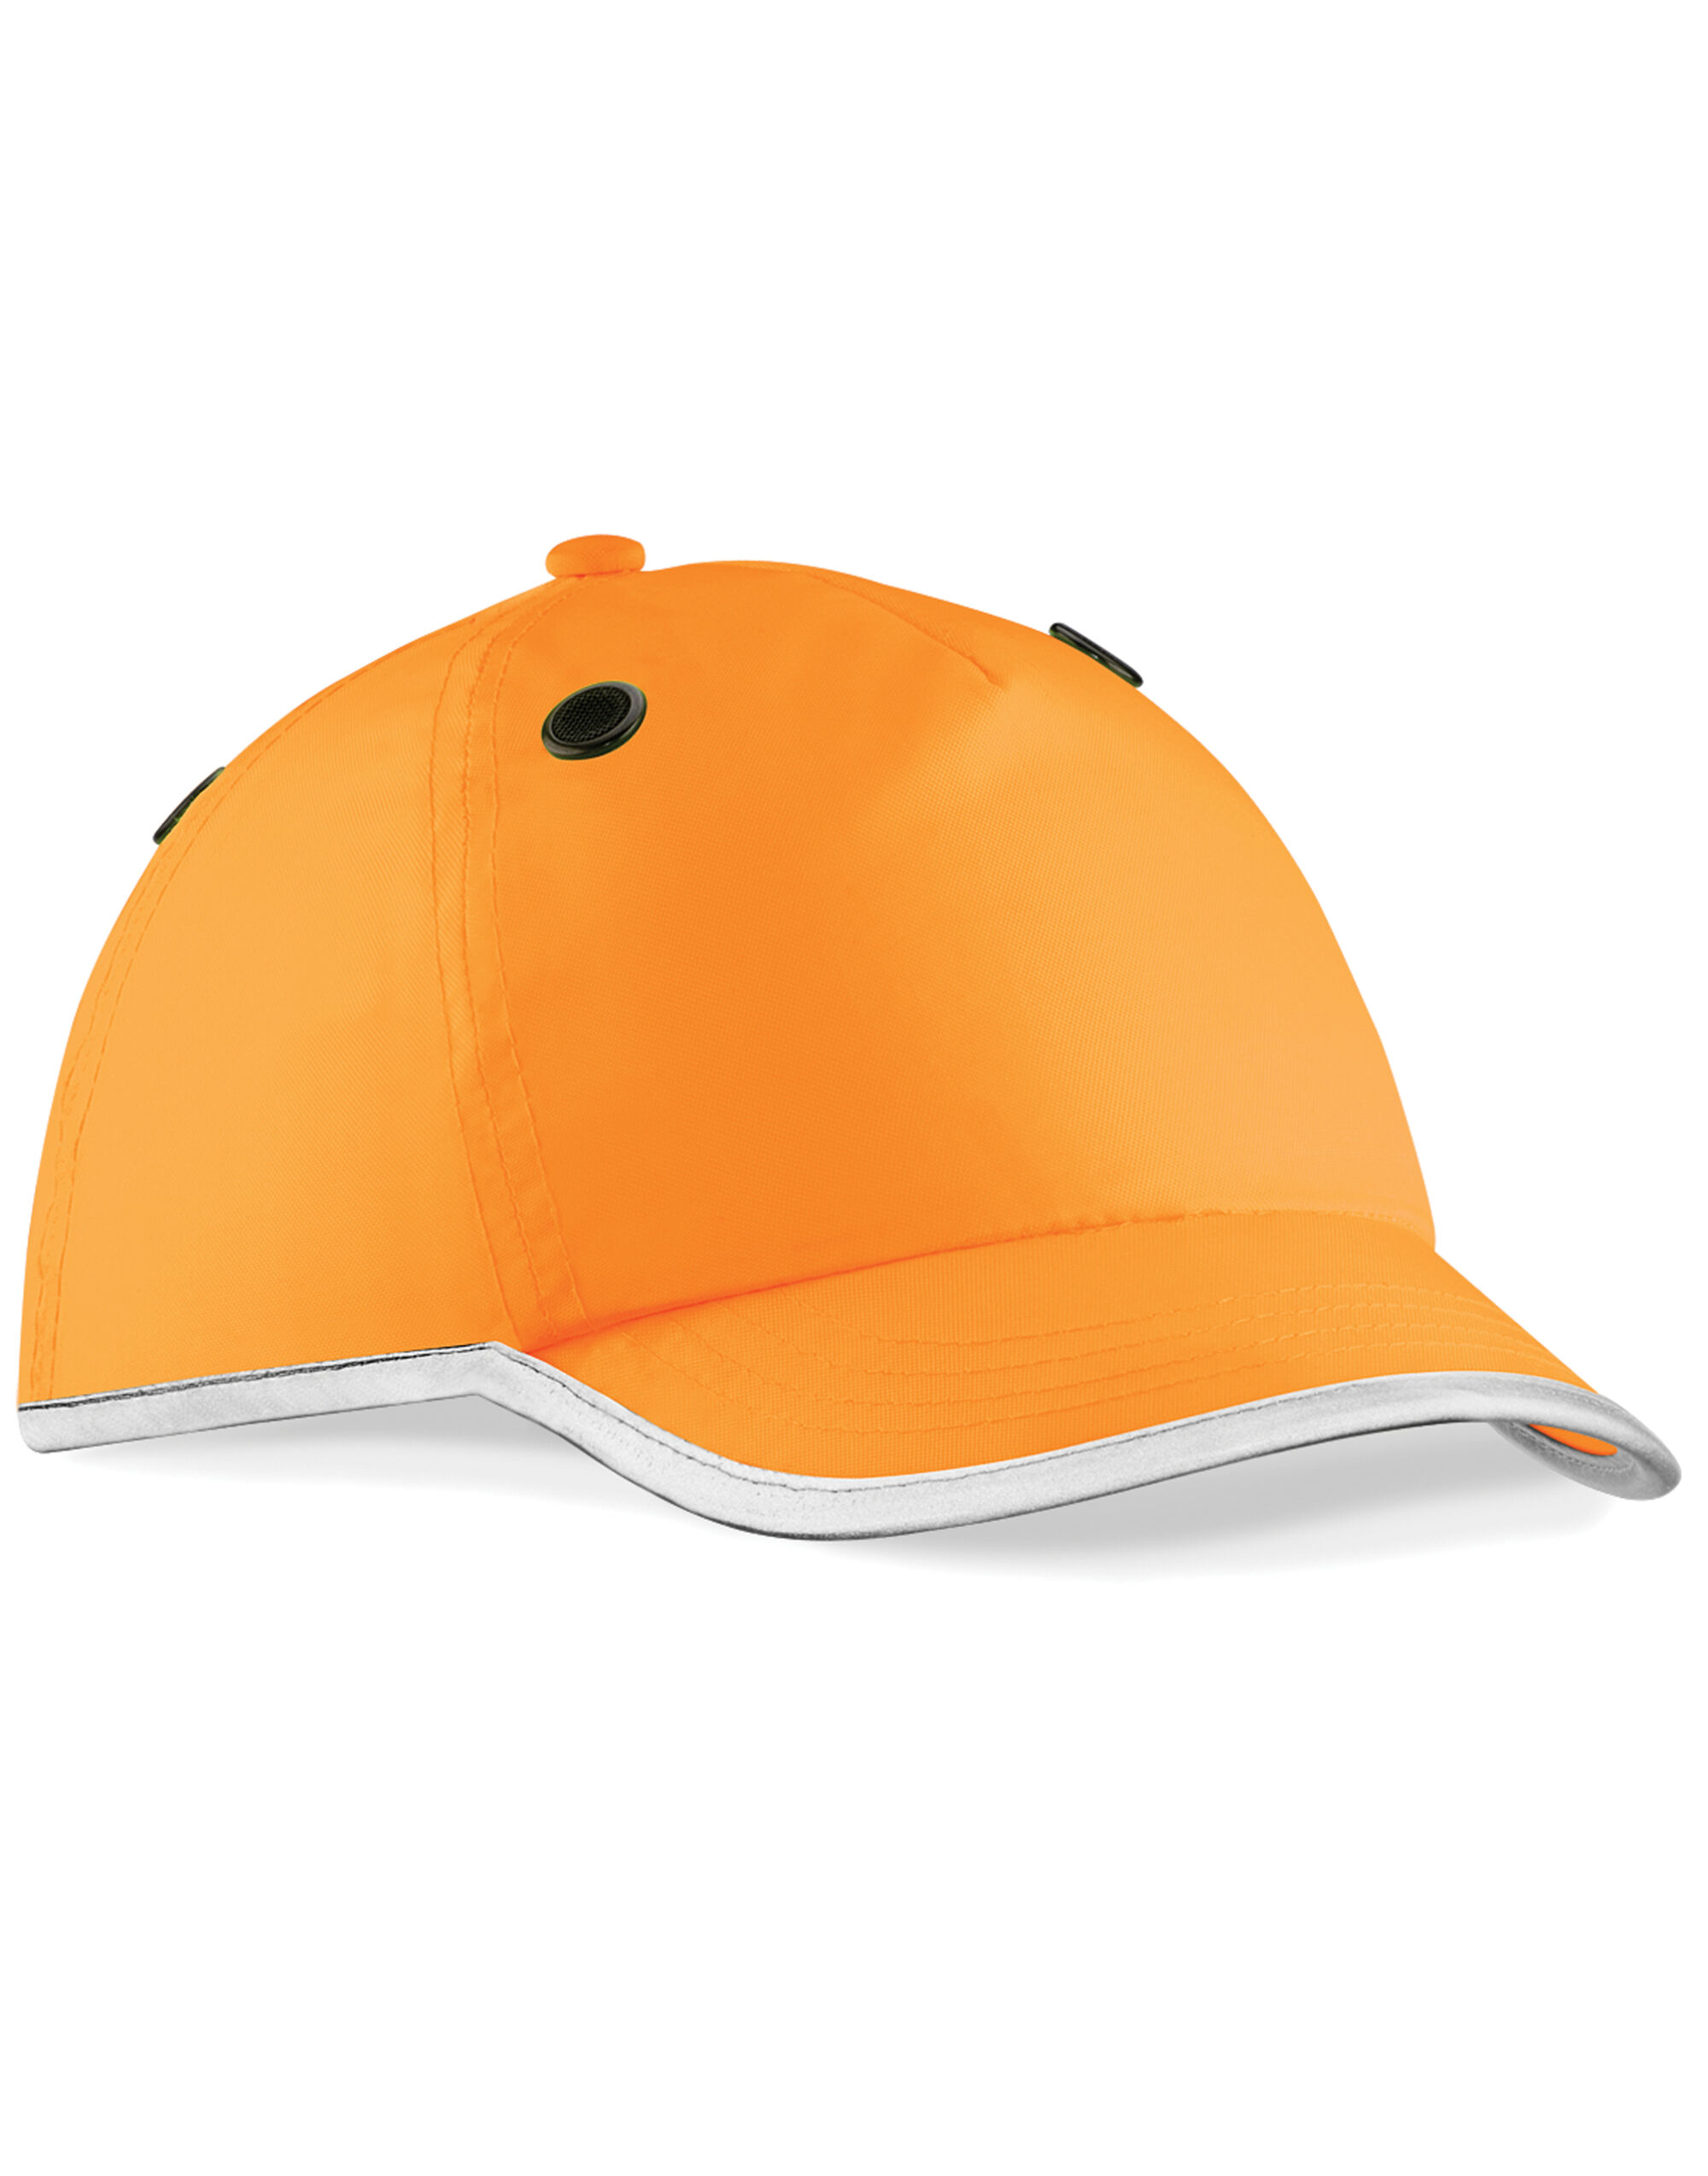 Enhanced Vis EN812 Bump Cap